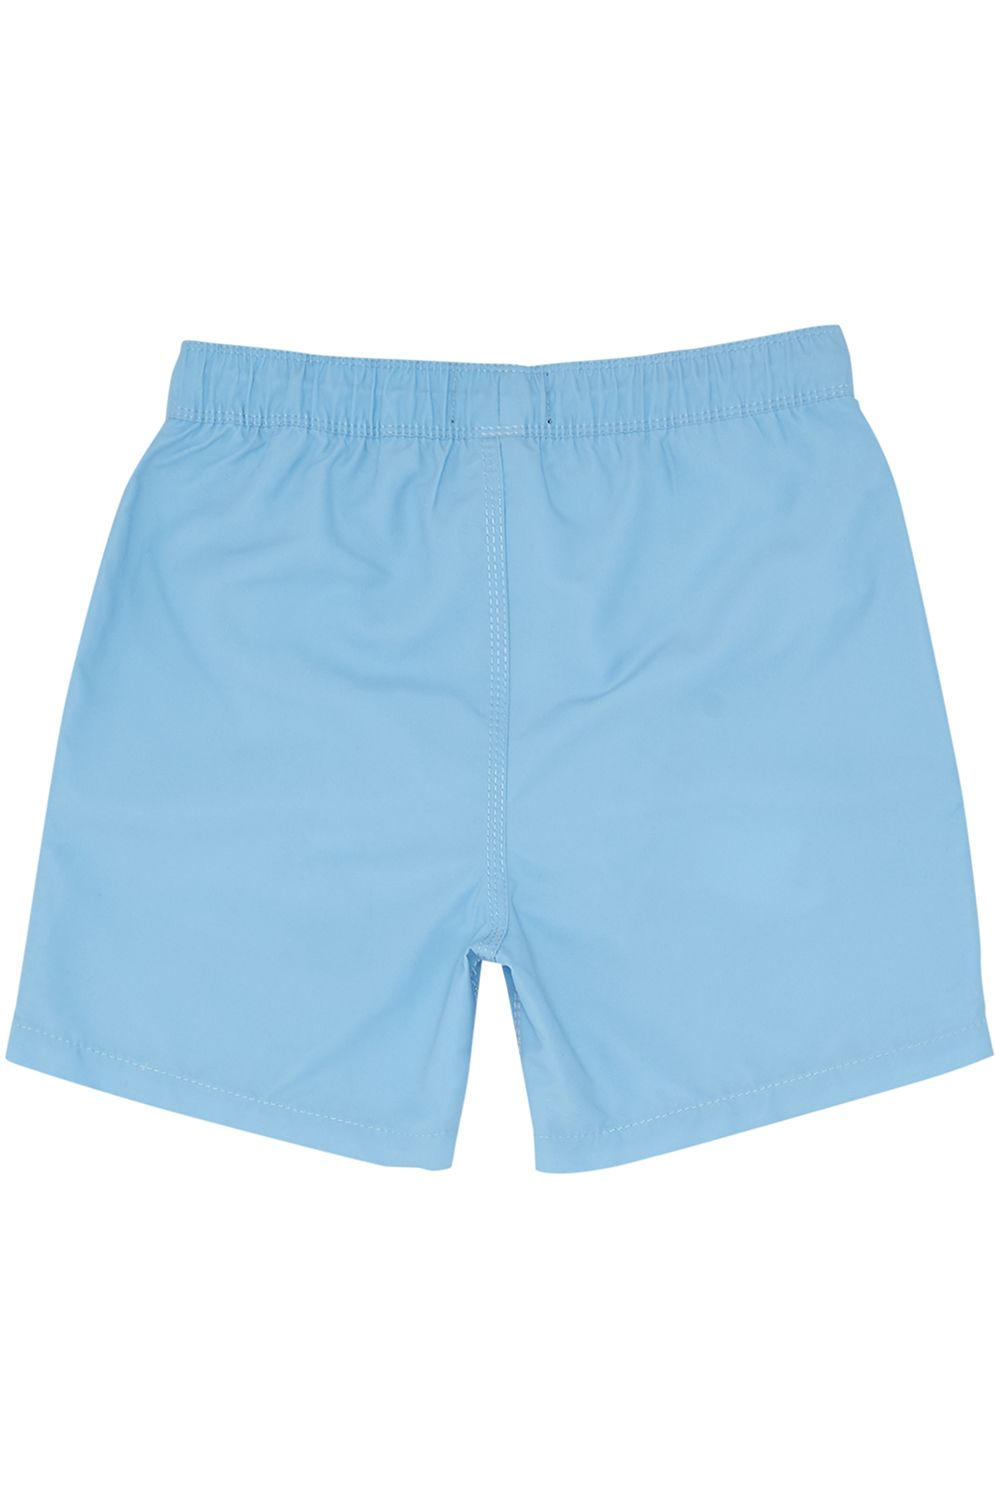 Volleys Billabong ALL DAY BOY Light Blue